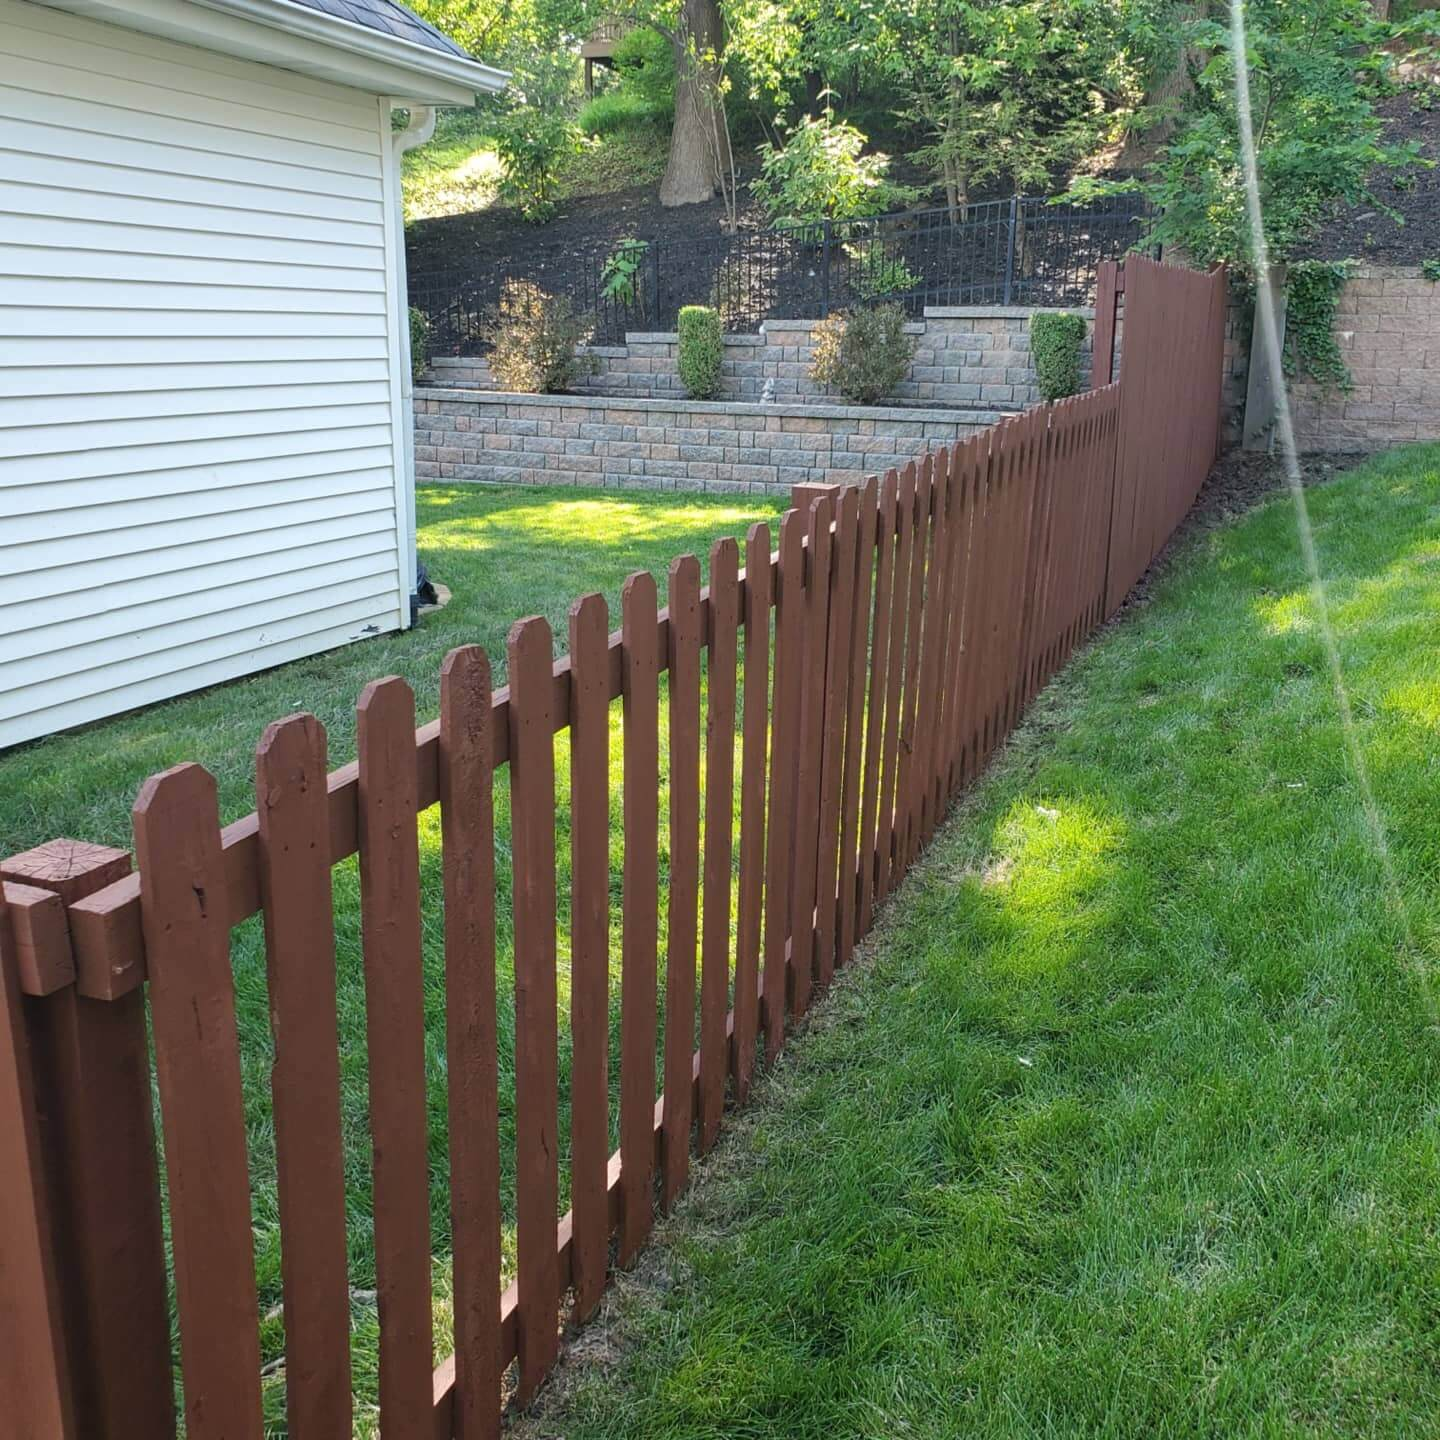 st-louis-fence-staining-8